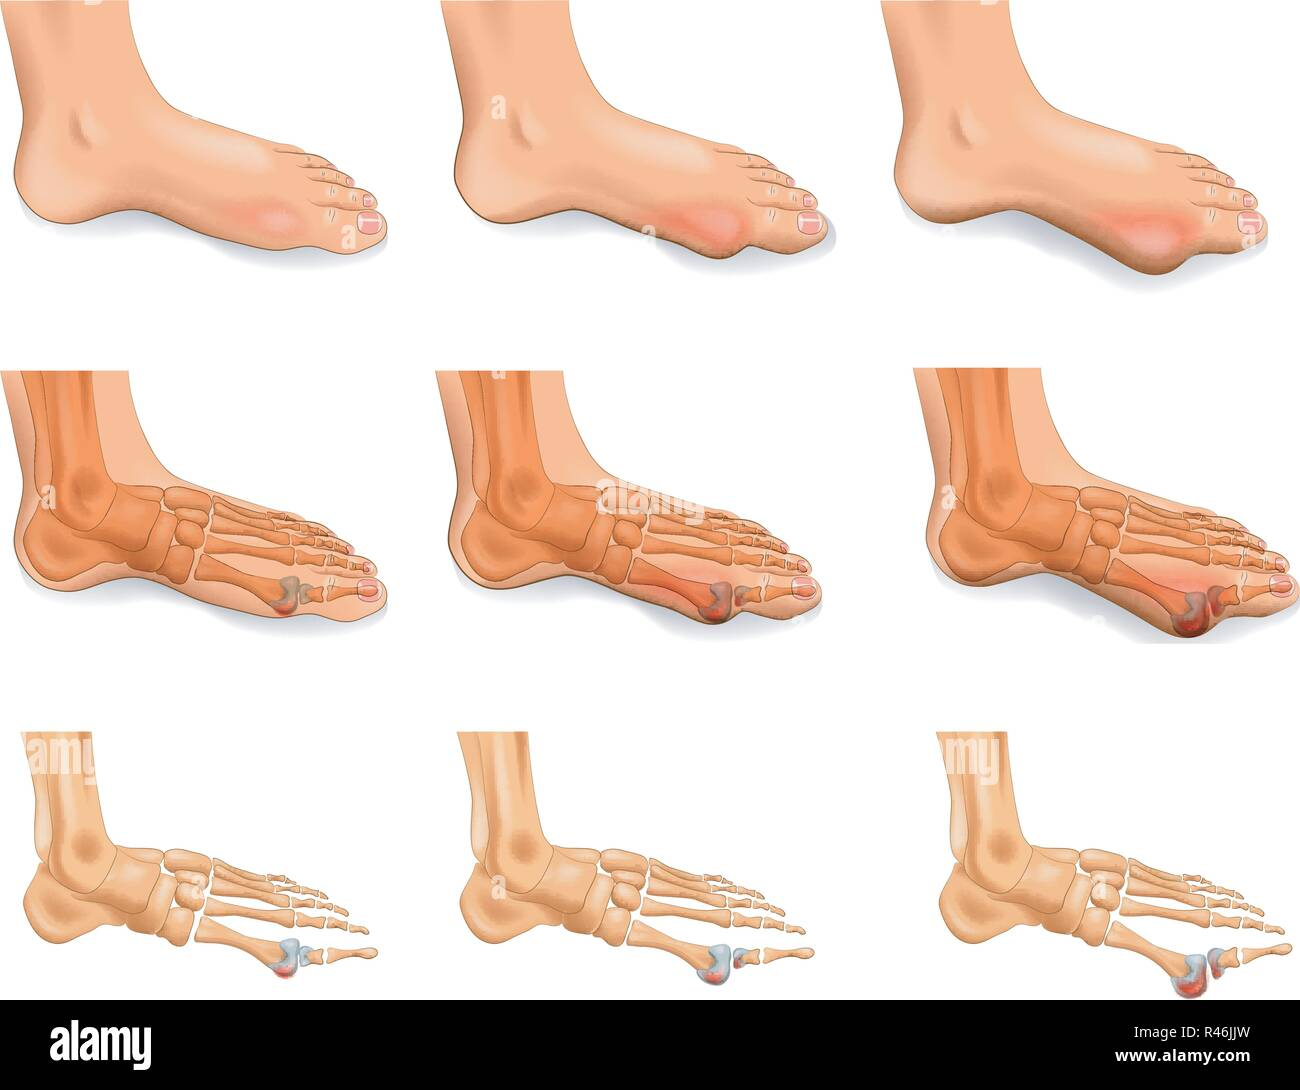 vector illustration of arthritis, arthrosis of the big toe - Stock Image